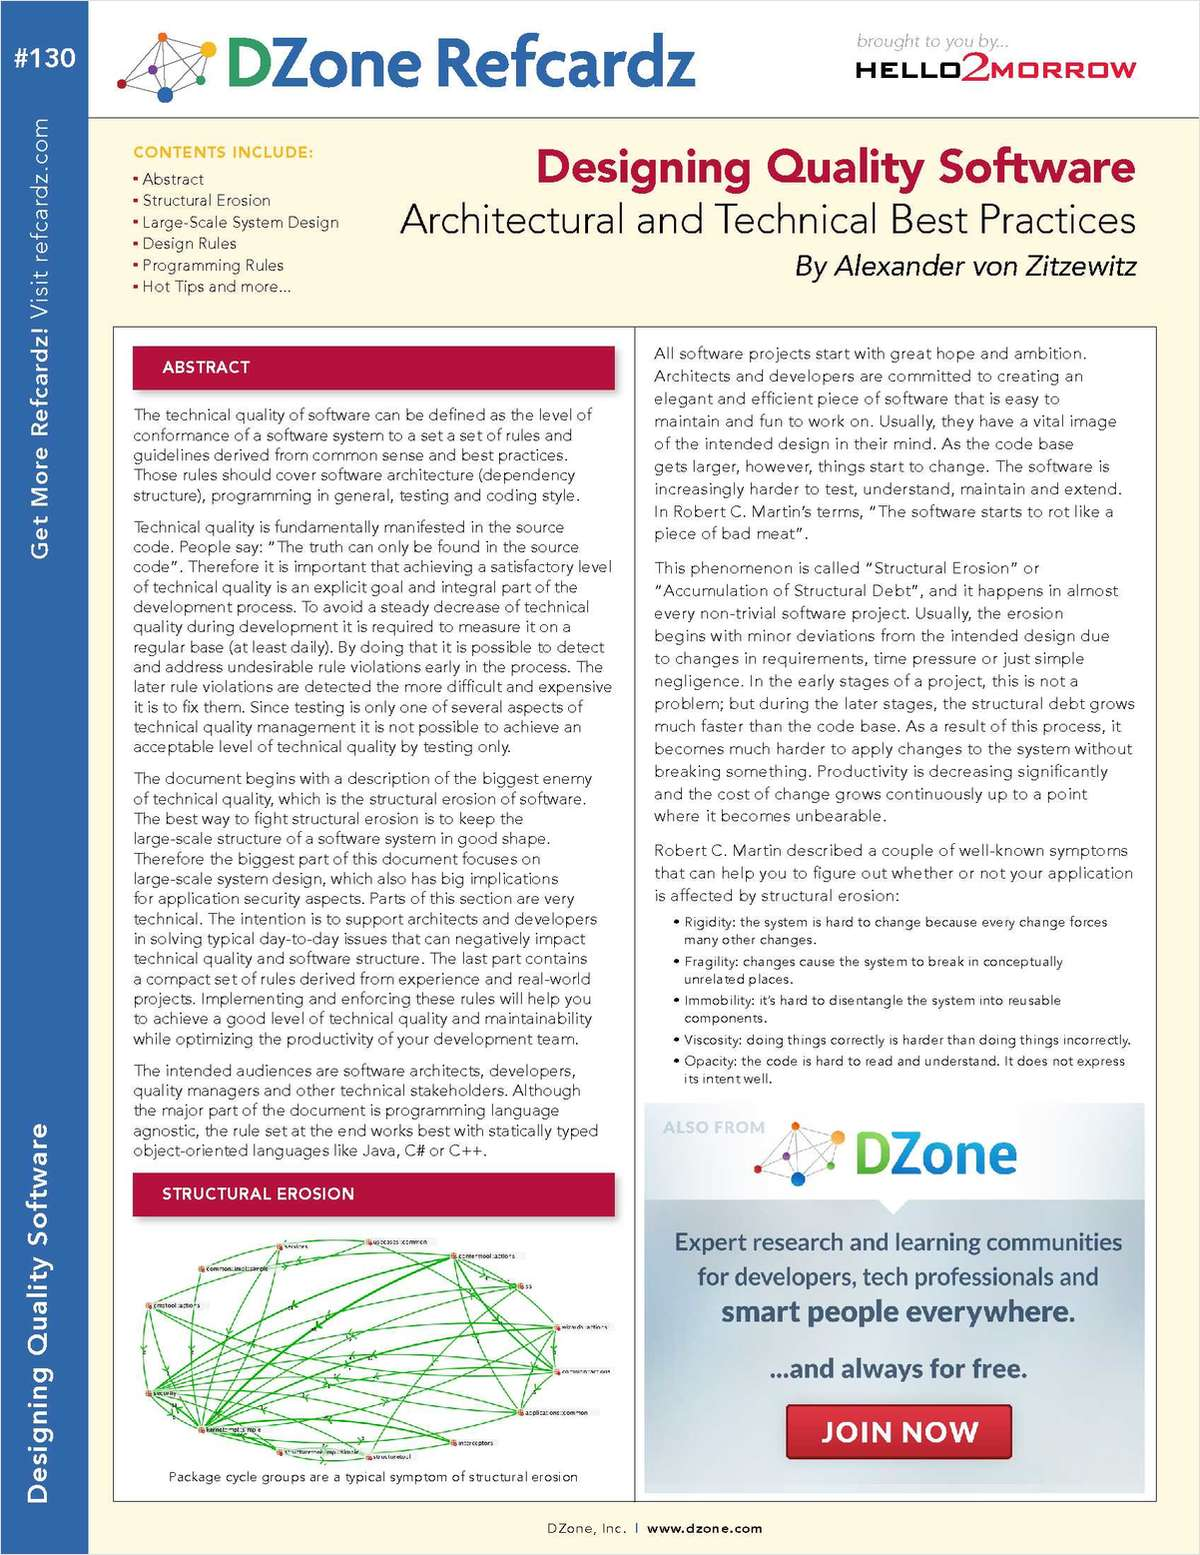 Designing Quality Software: Architectural and Technical Best Practices